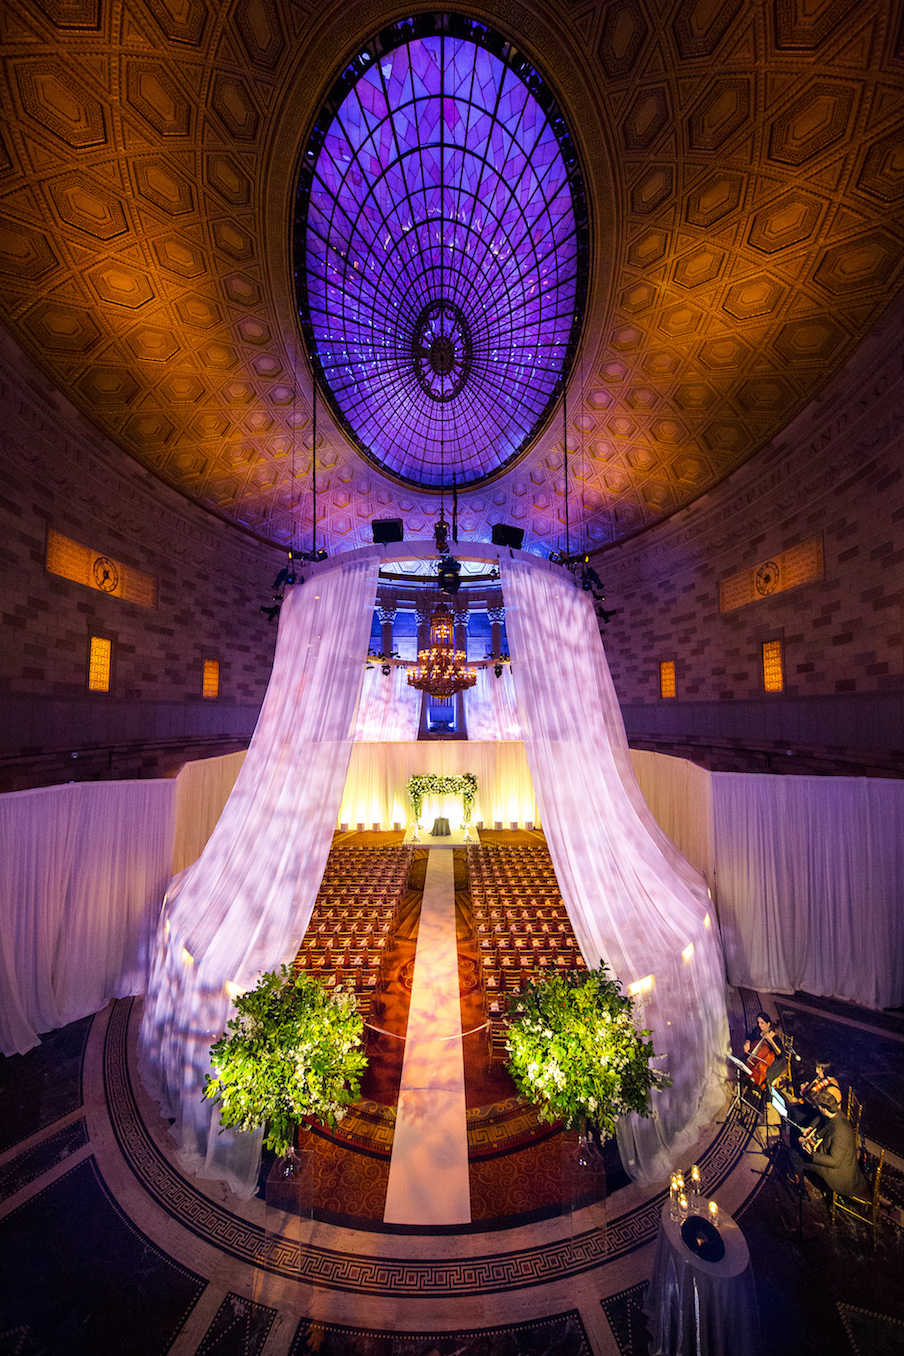 Wedding Ceremony Ballroom Draping.jpg